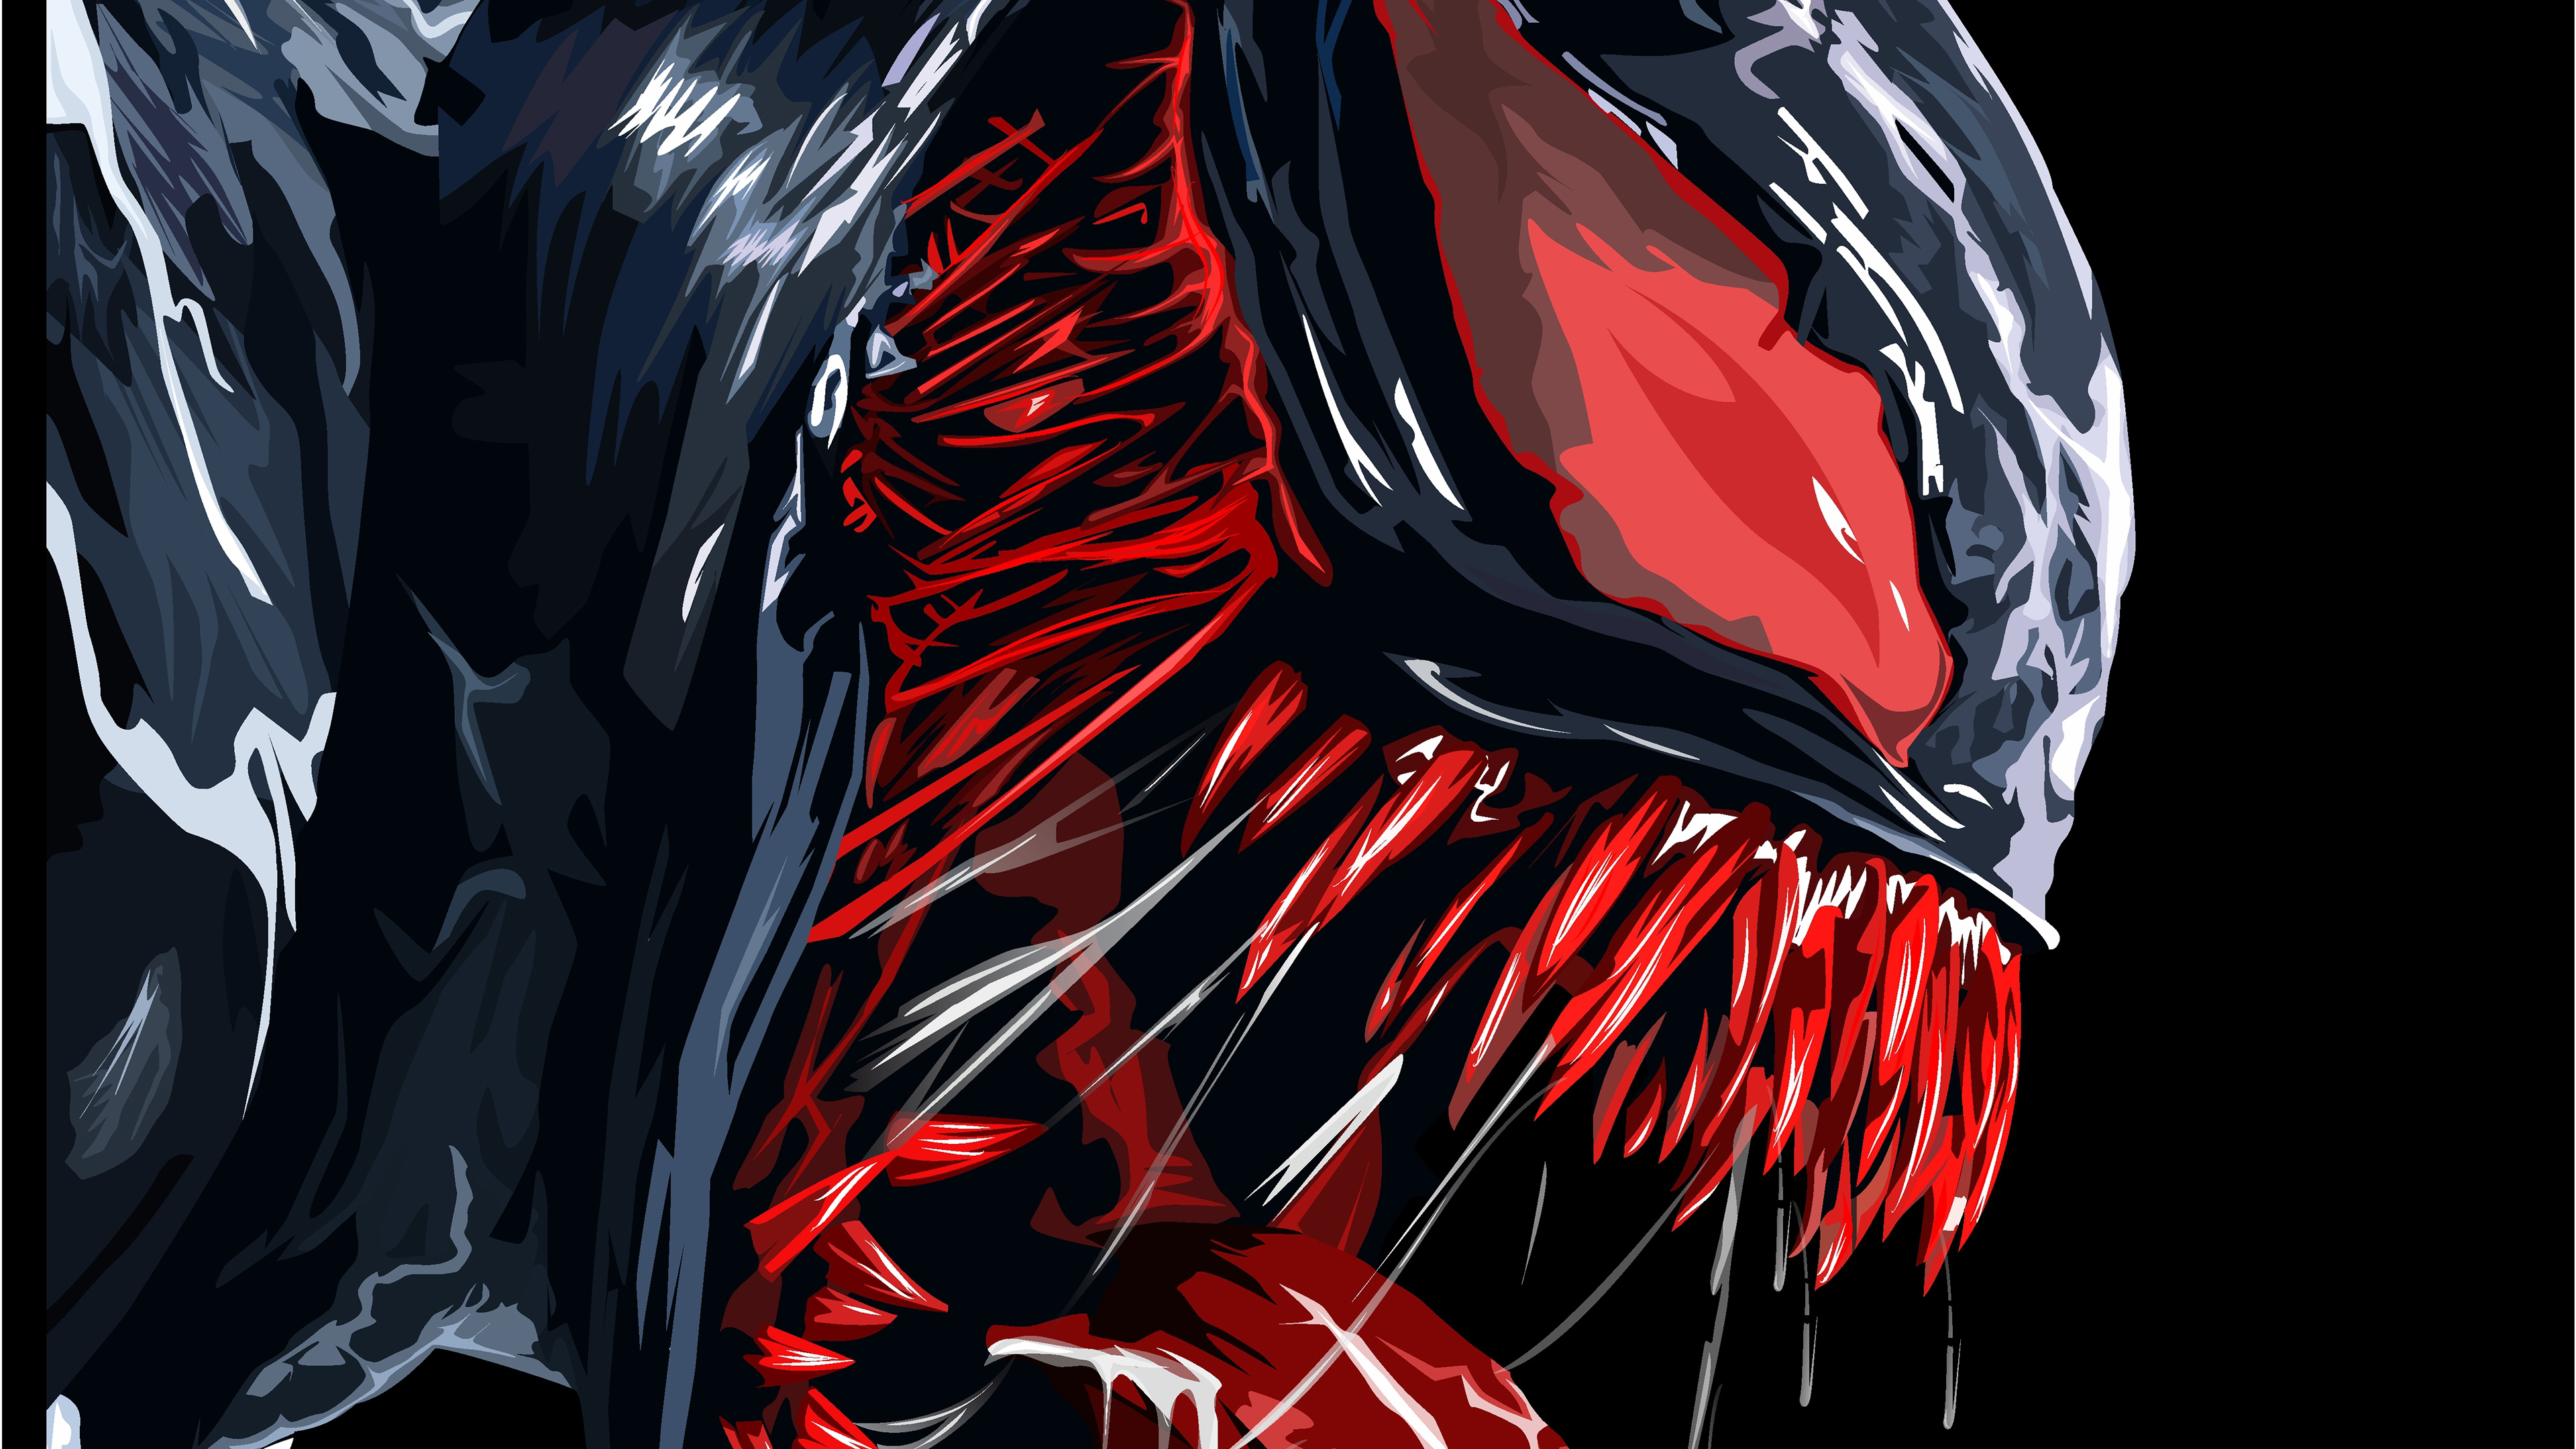 Venom Wallpaper Hd Posted By Ethan Sellers